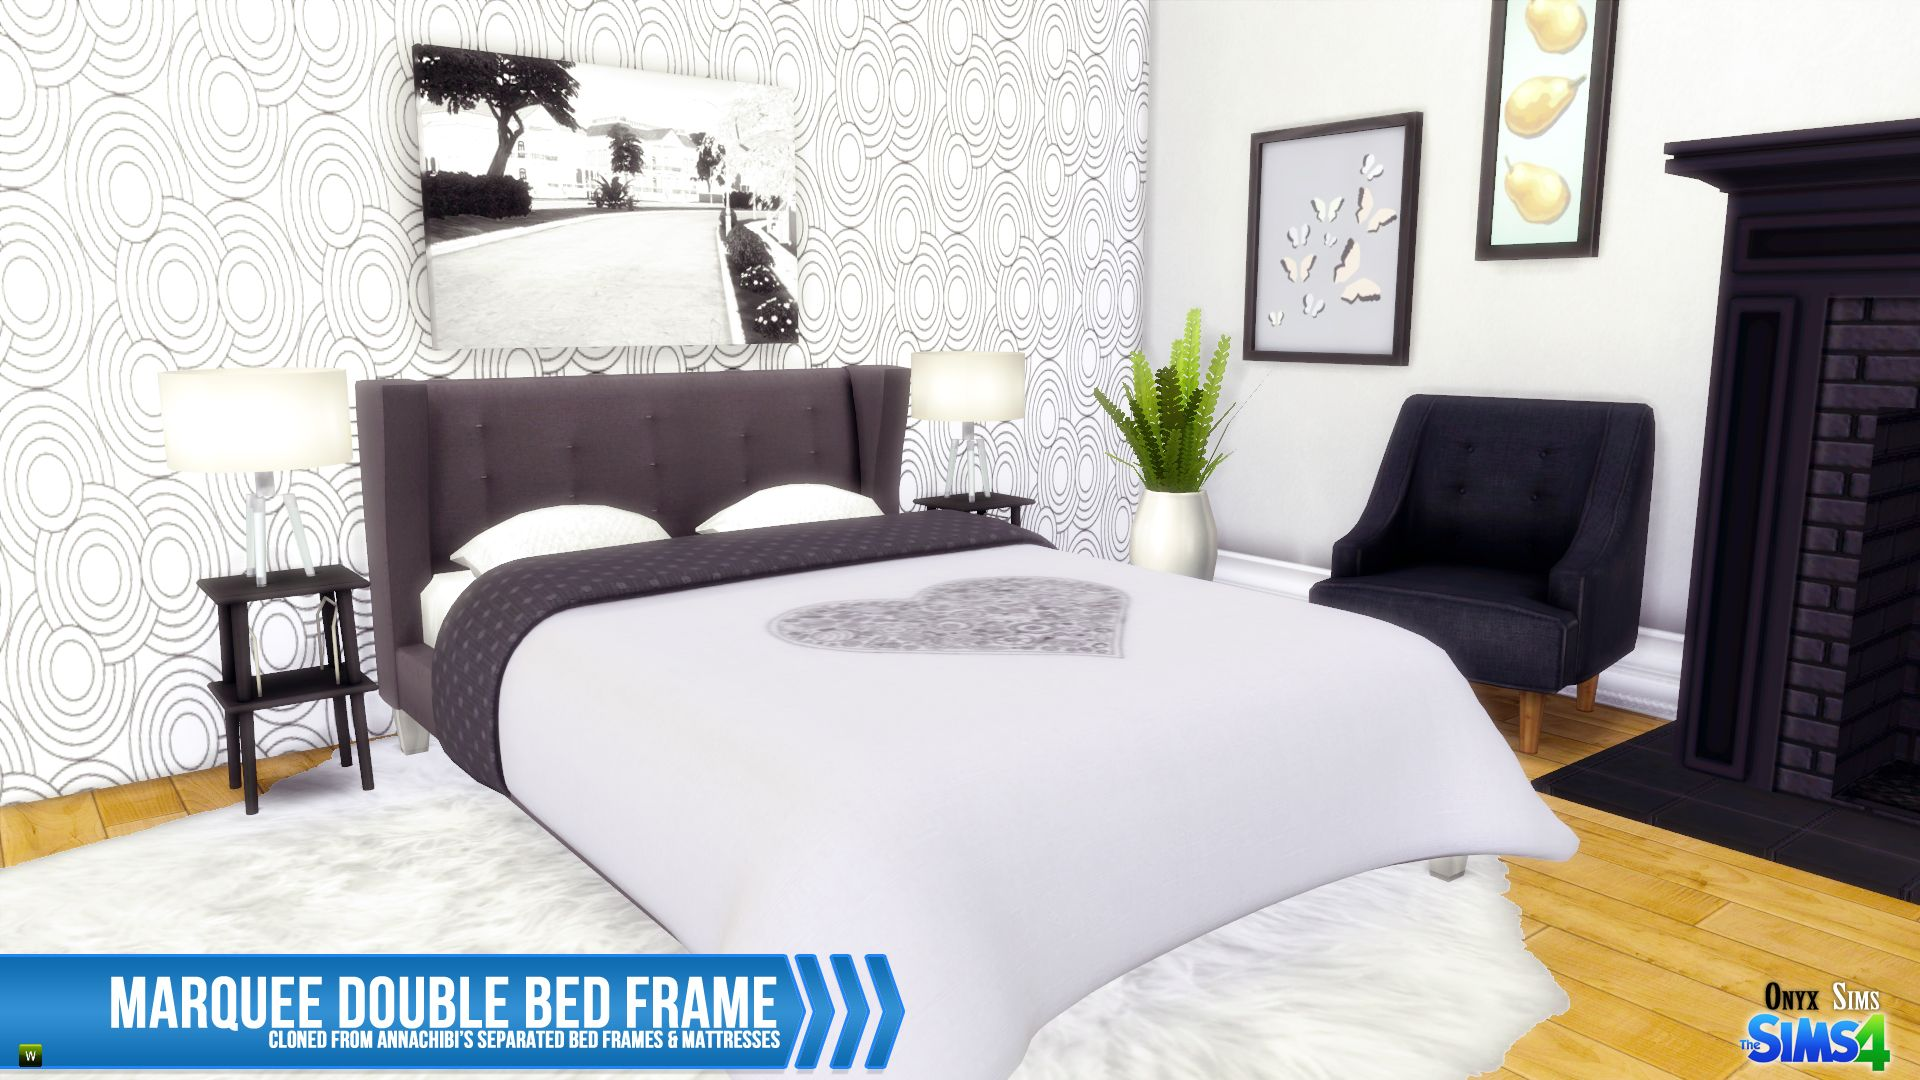 Muebles Sims 4 Ts4 Marquee Double Bed Frame Sims 4 Houses Pinterest